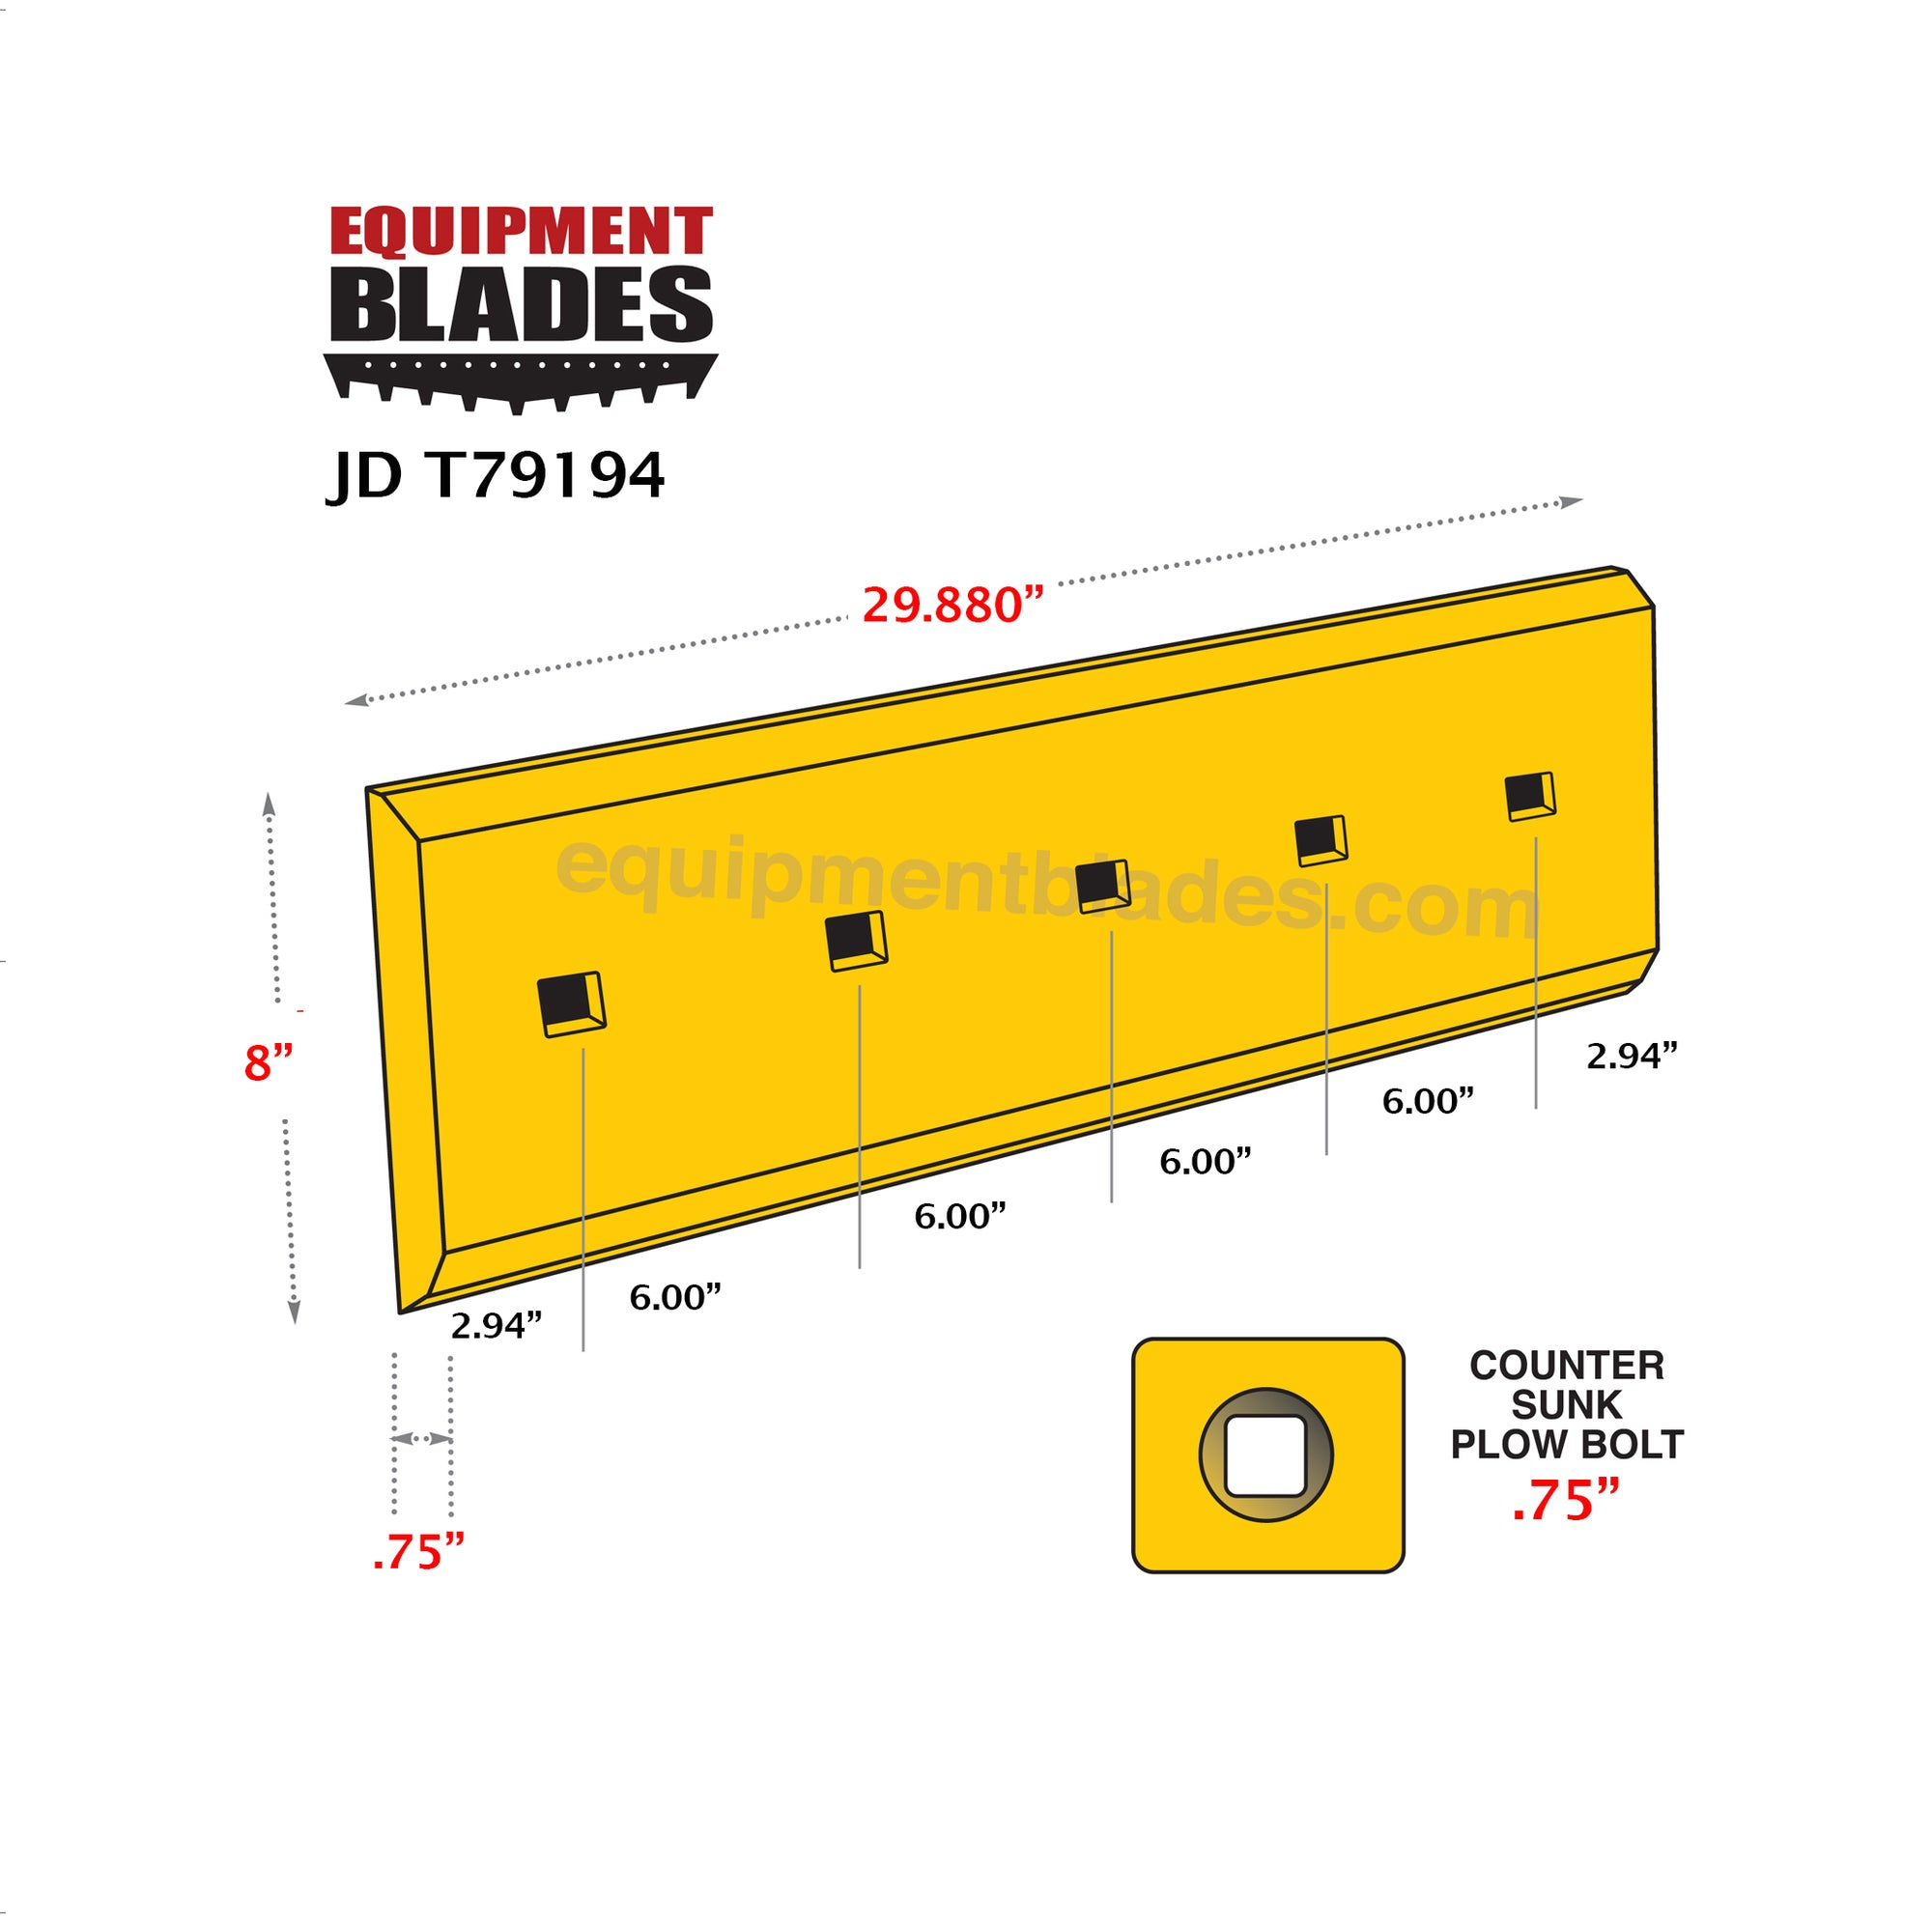 JD T79194-8-Bull Dozer blades-Equipment Blades Inc-Equipment Blades Inc